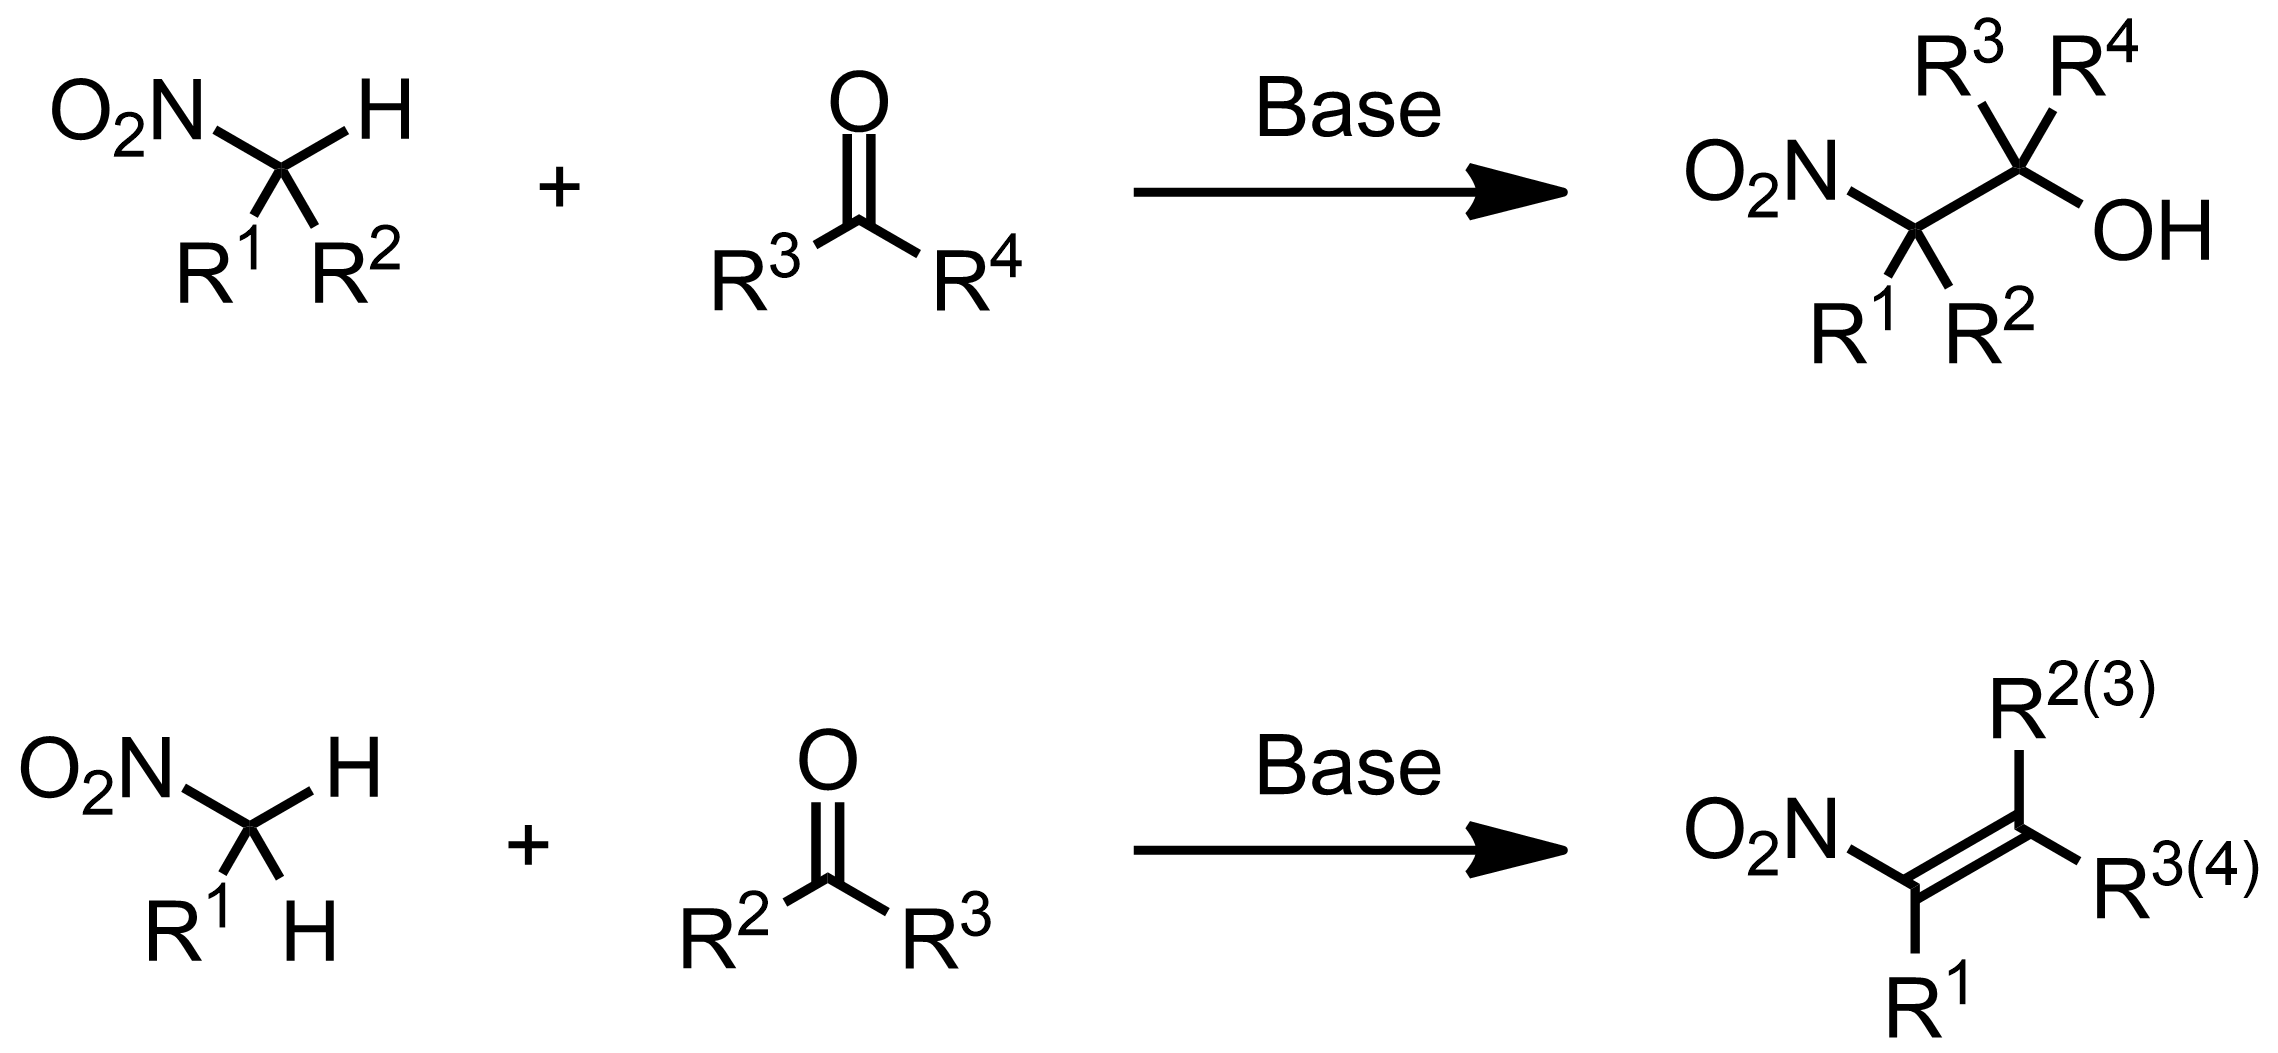 Schematic representation of the Henry Reaction.